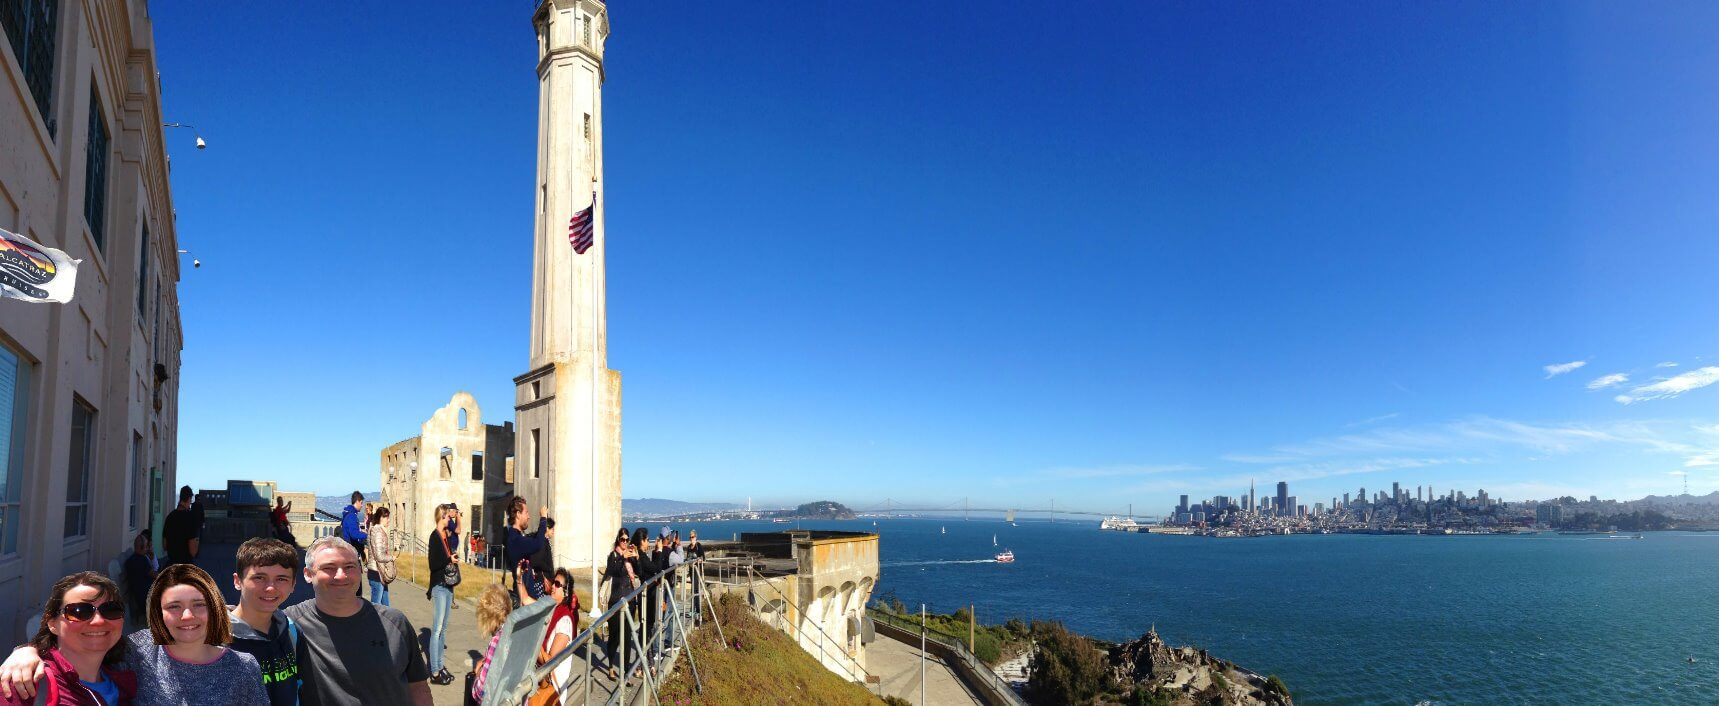 alcatraz-island-tickets-prison-tour-ferry-trip-from-san-francisco